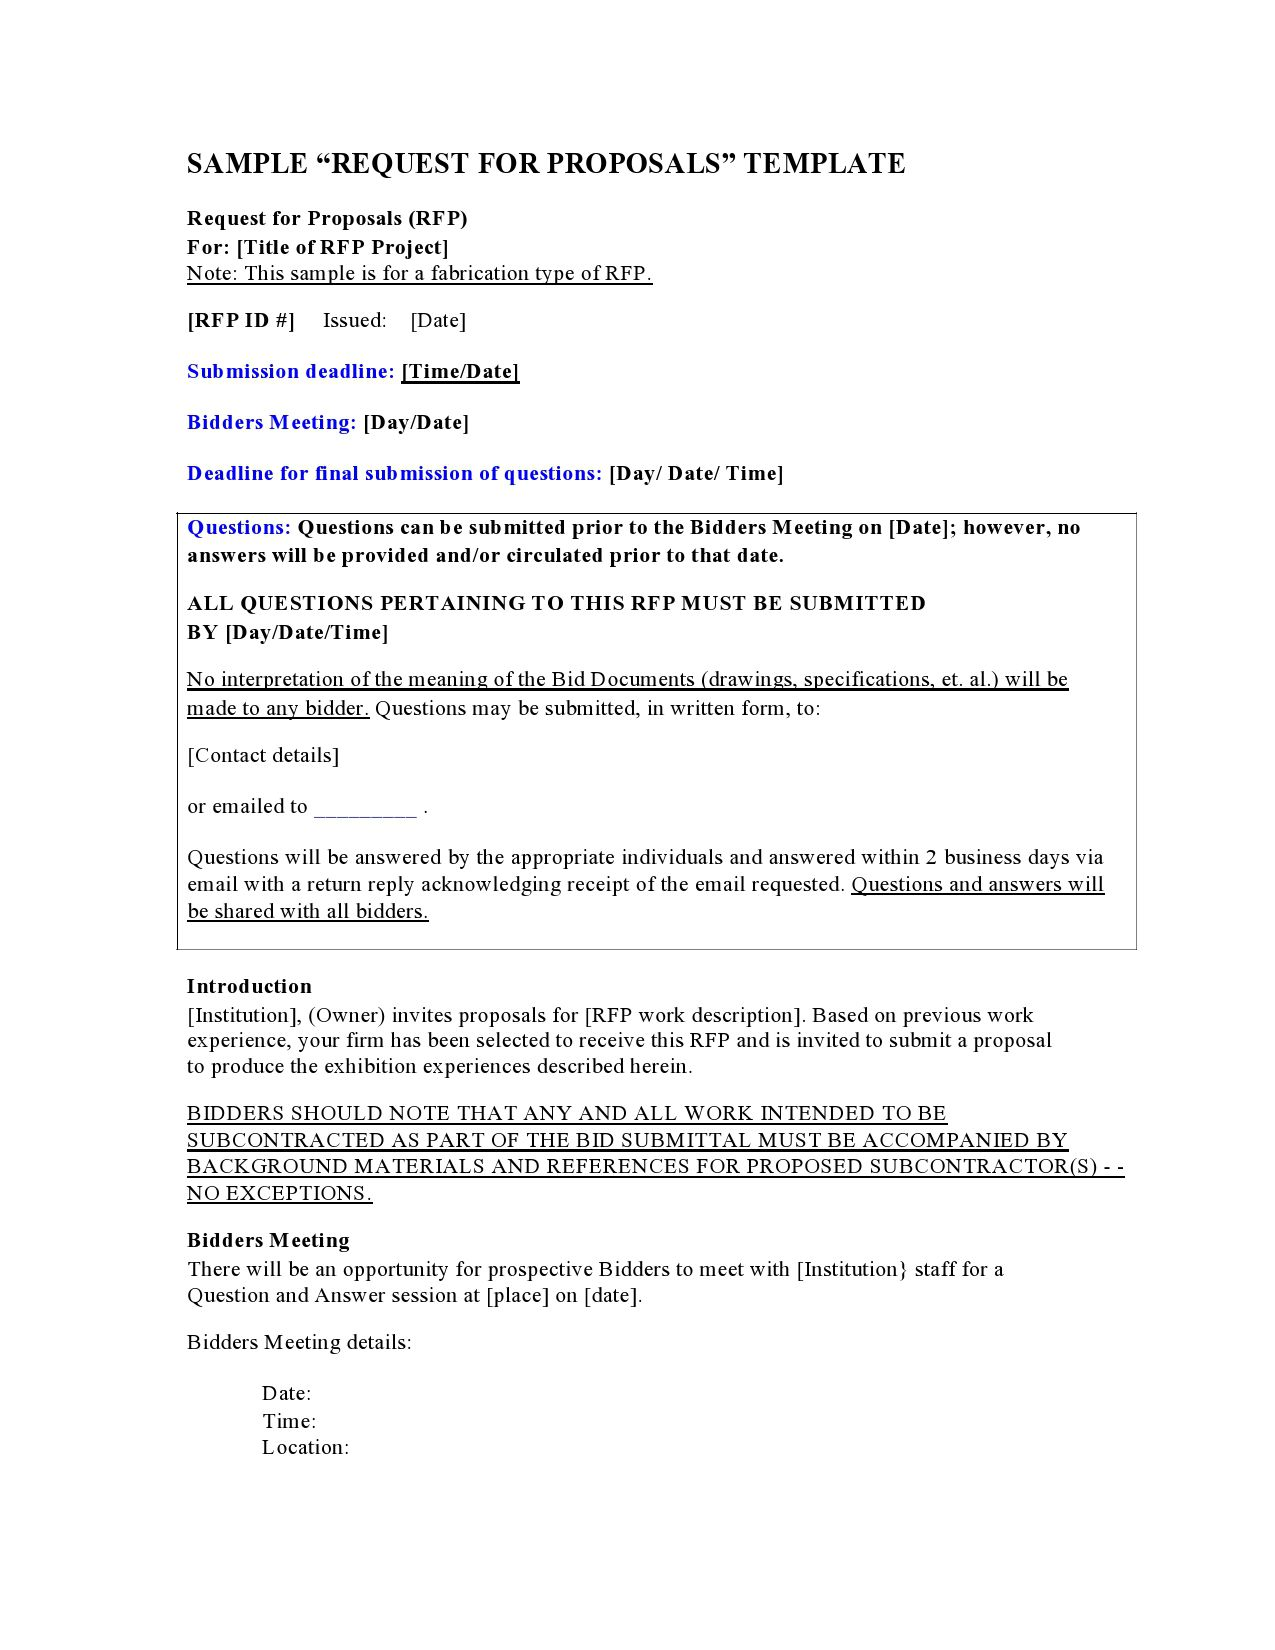 009 Remarkable Request For Proposal Template Canada Picture Full